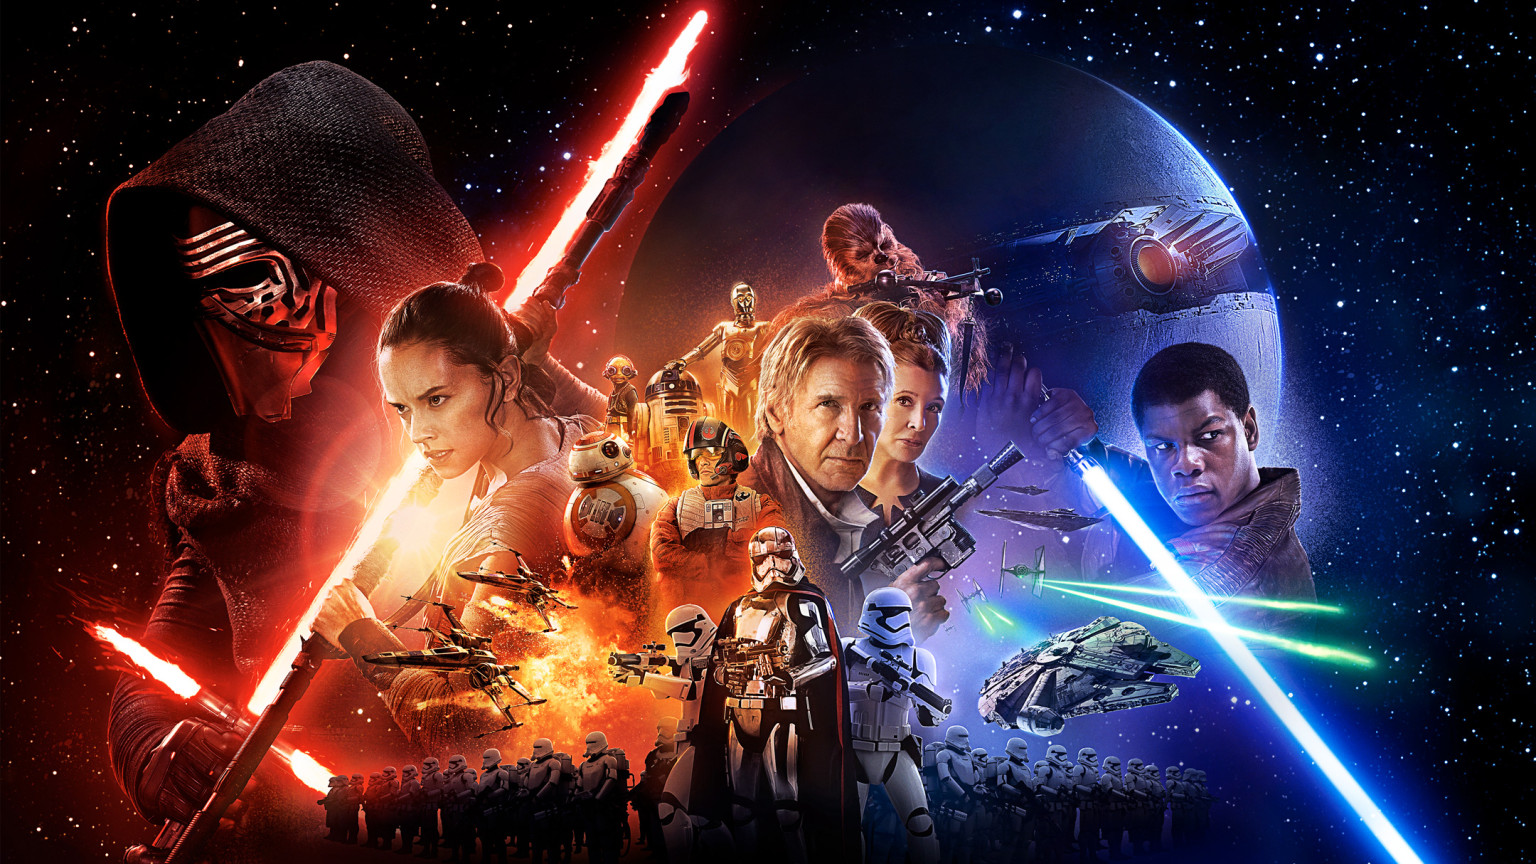 Star Wars The Force Awakens George Lucas